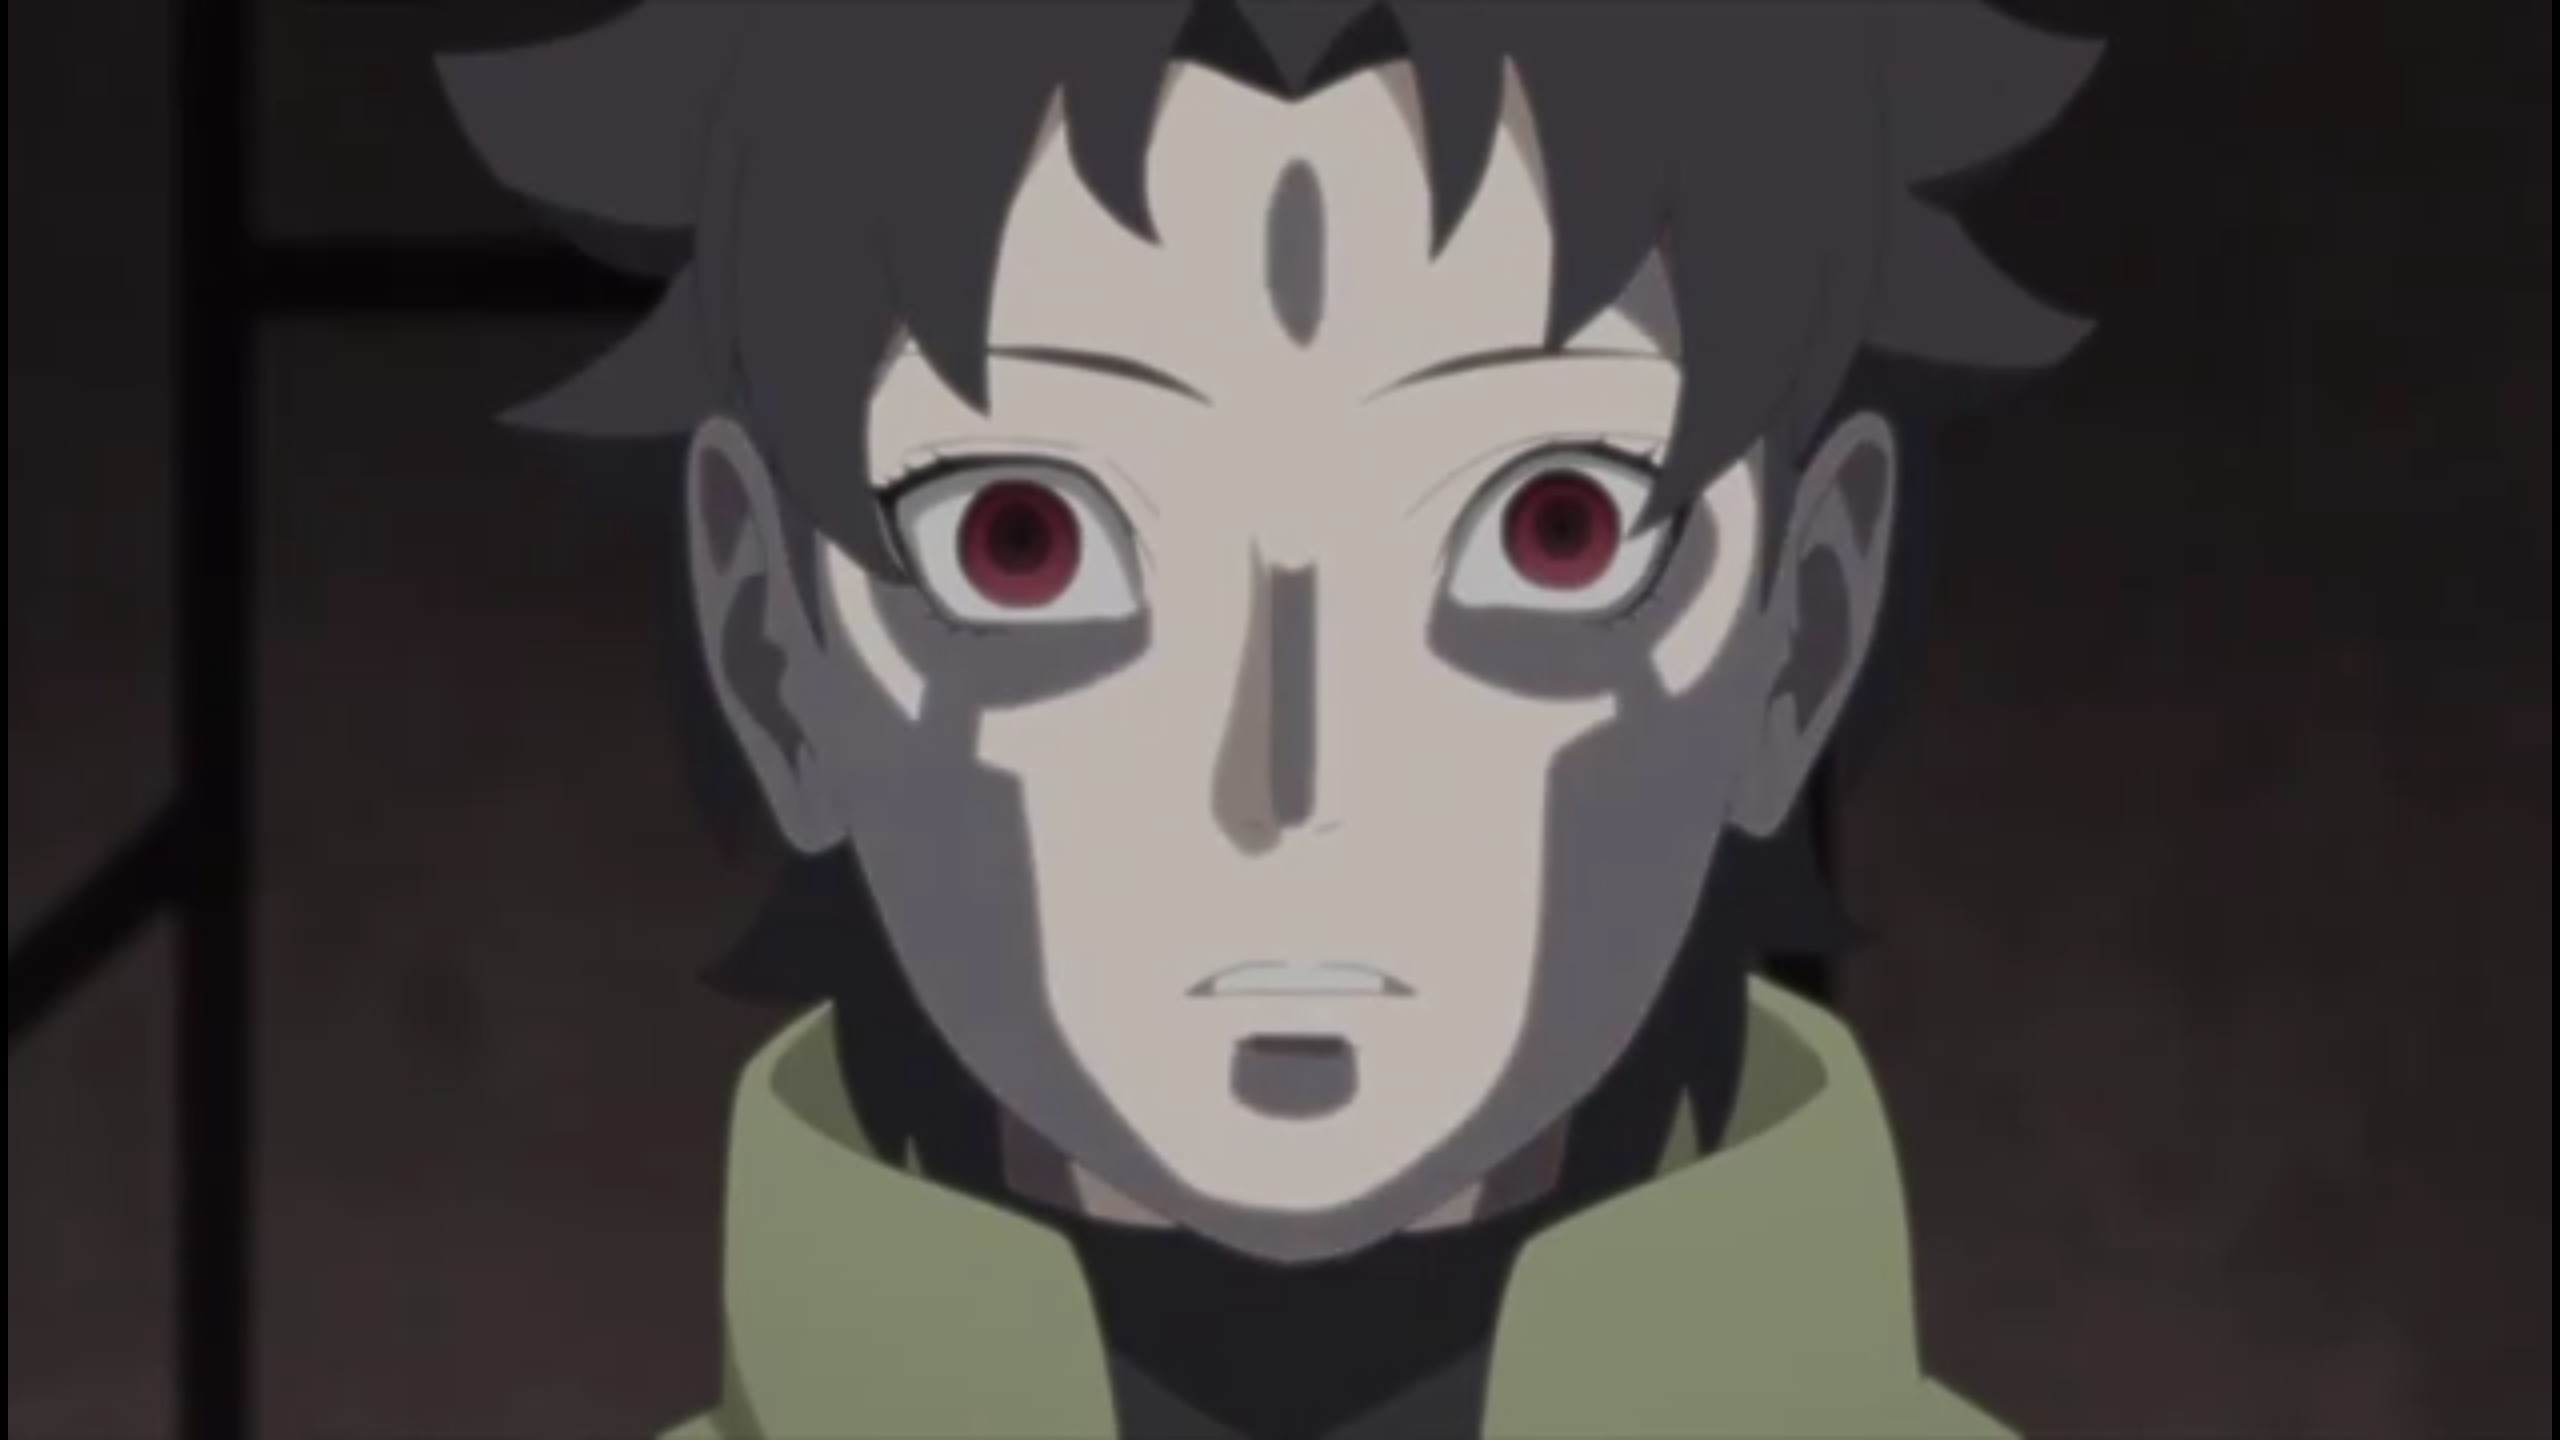 Naruto shippuden episode 107 english subbed download